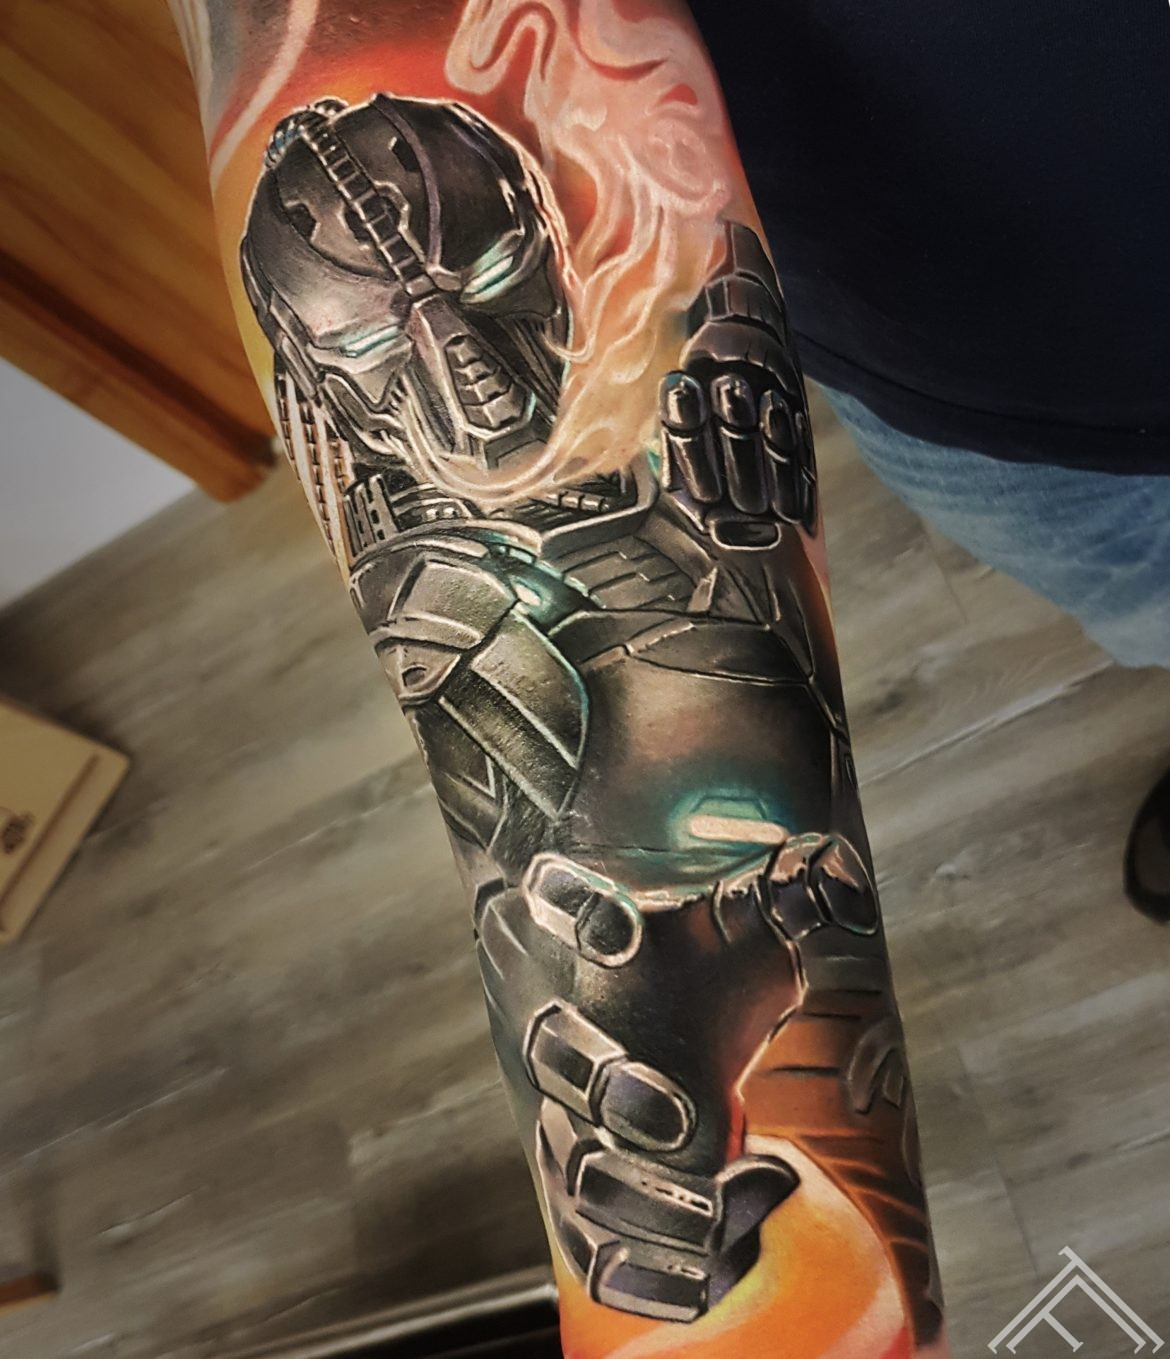 smoke-mortalkombat-tattoo-fight-game-tetovejums-sporta2-marispavlo-facebook-instagram-triborg